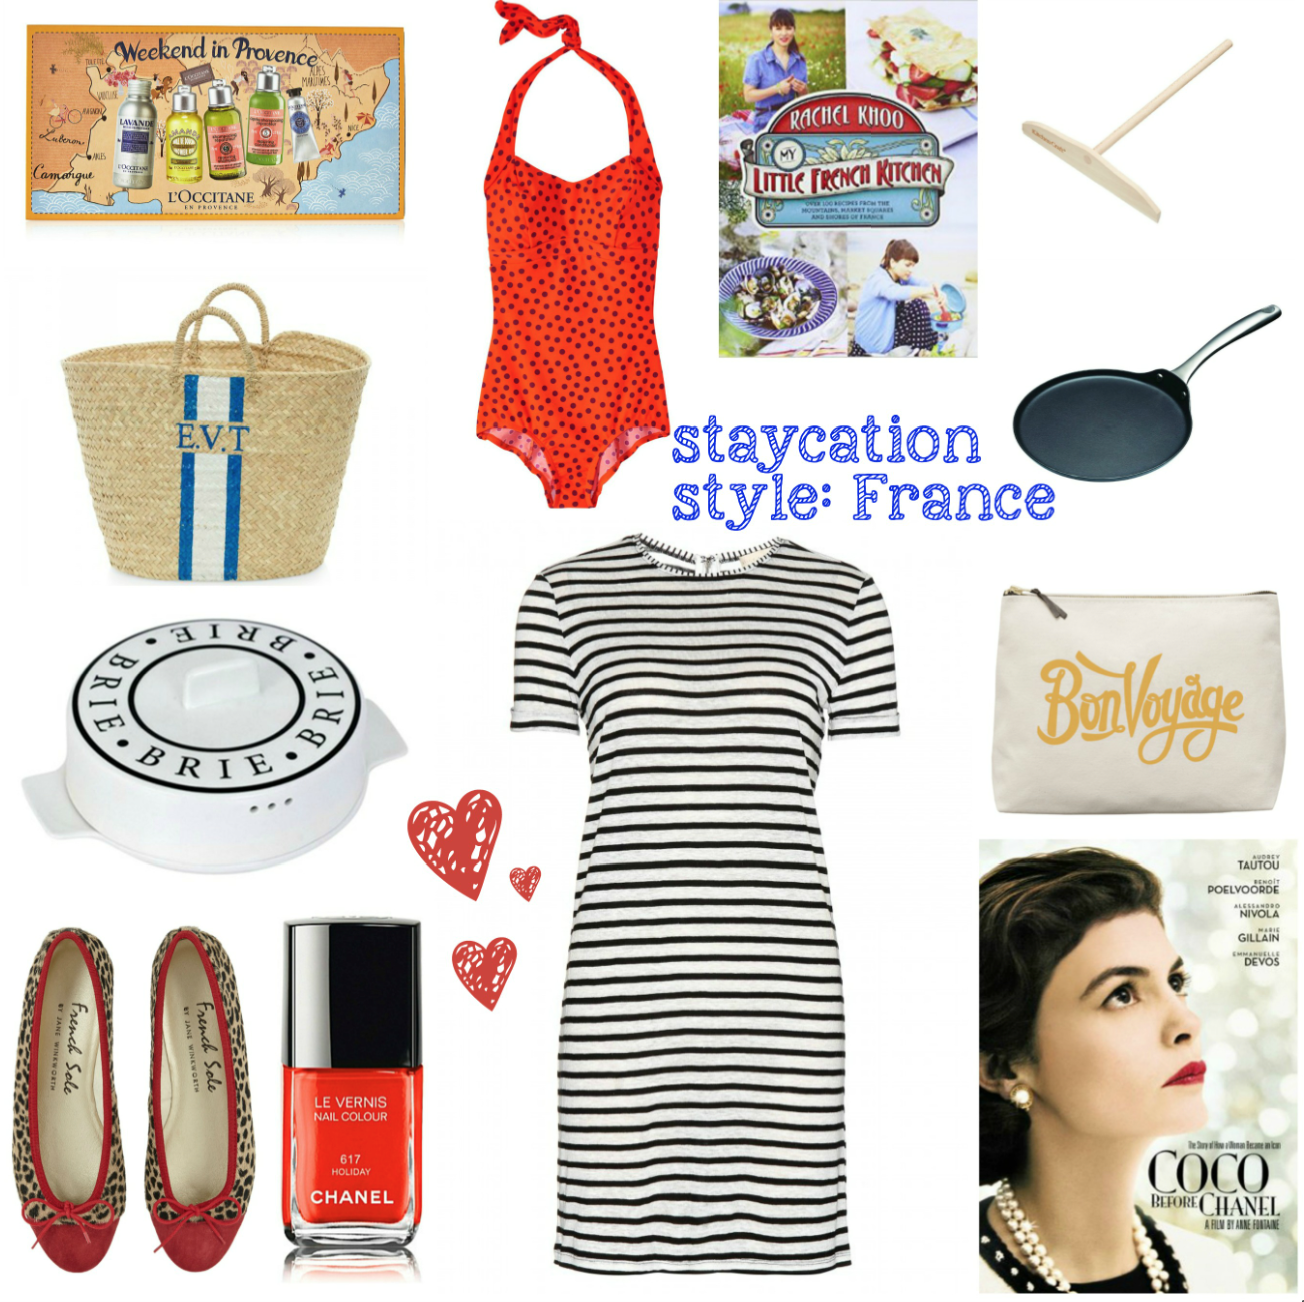 mamasVIb | V. I. BABYMAMAS: How to take a stylish holiday …at HOME! Part 2 | holiday at home | stay cation | holiday style | holiday fashion | shopping | fashion | holiday | vacation | weekend in provence | loccitane | marsk and spencer | M&S | toast | polka dot swimsuit | are feather | rachel Khoo | france | french } french holiday | paris paris style | french fashion | french sole | ballet pumps | crepe pan crepe spreader | chanel | coco chanel | alice and olivia | stripe dress | alphabet bags | bon voyage bag | brie baker | french holiday | holiday at home